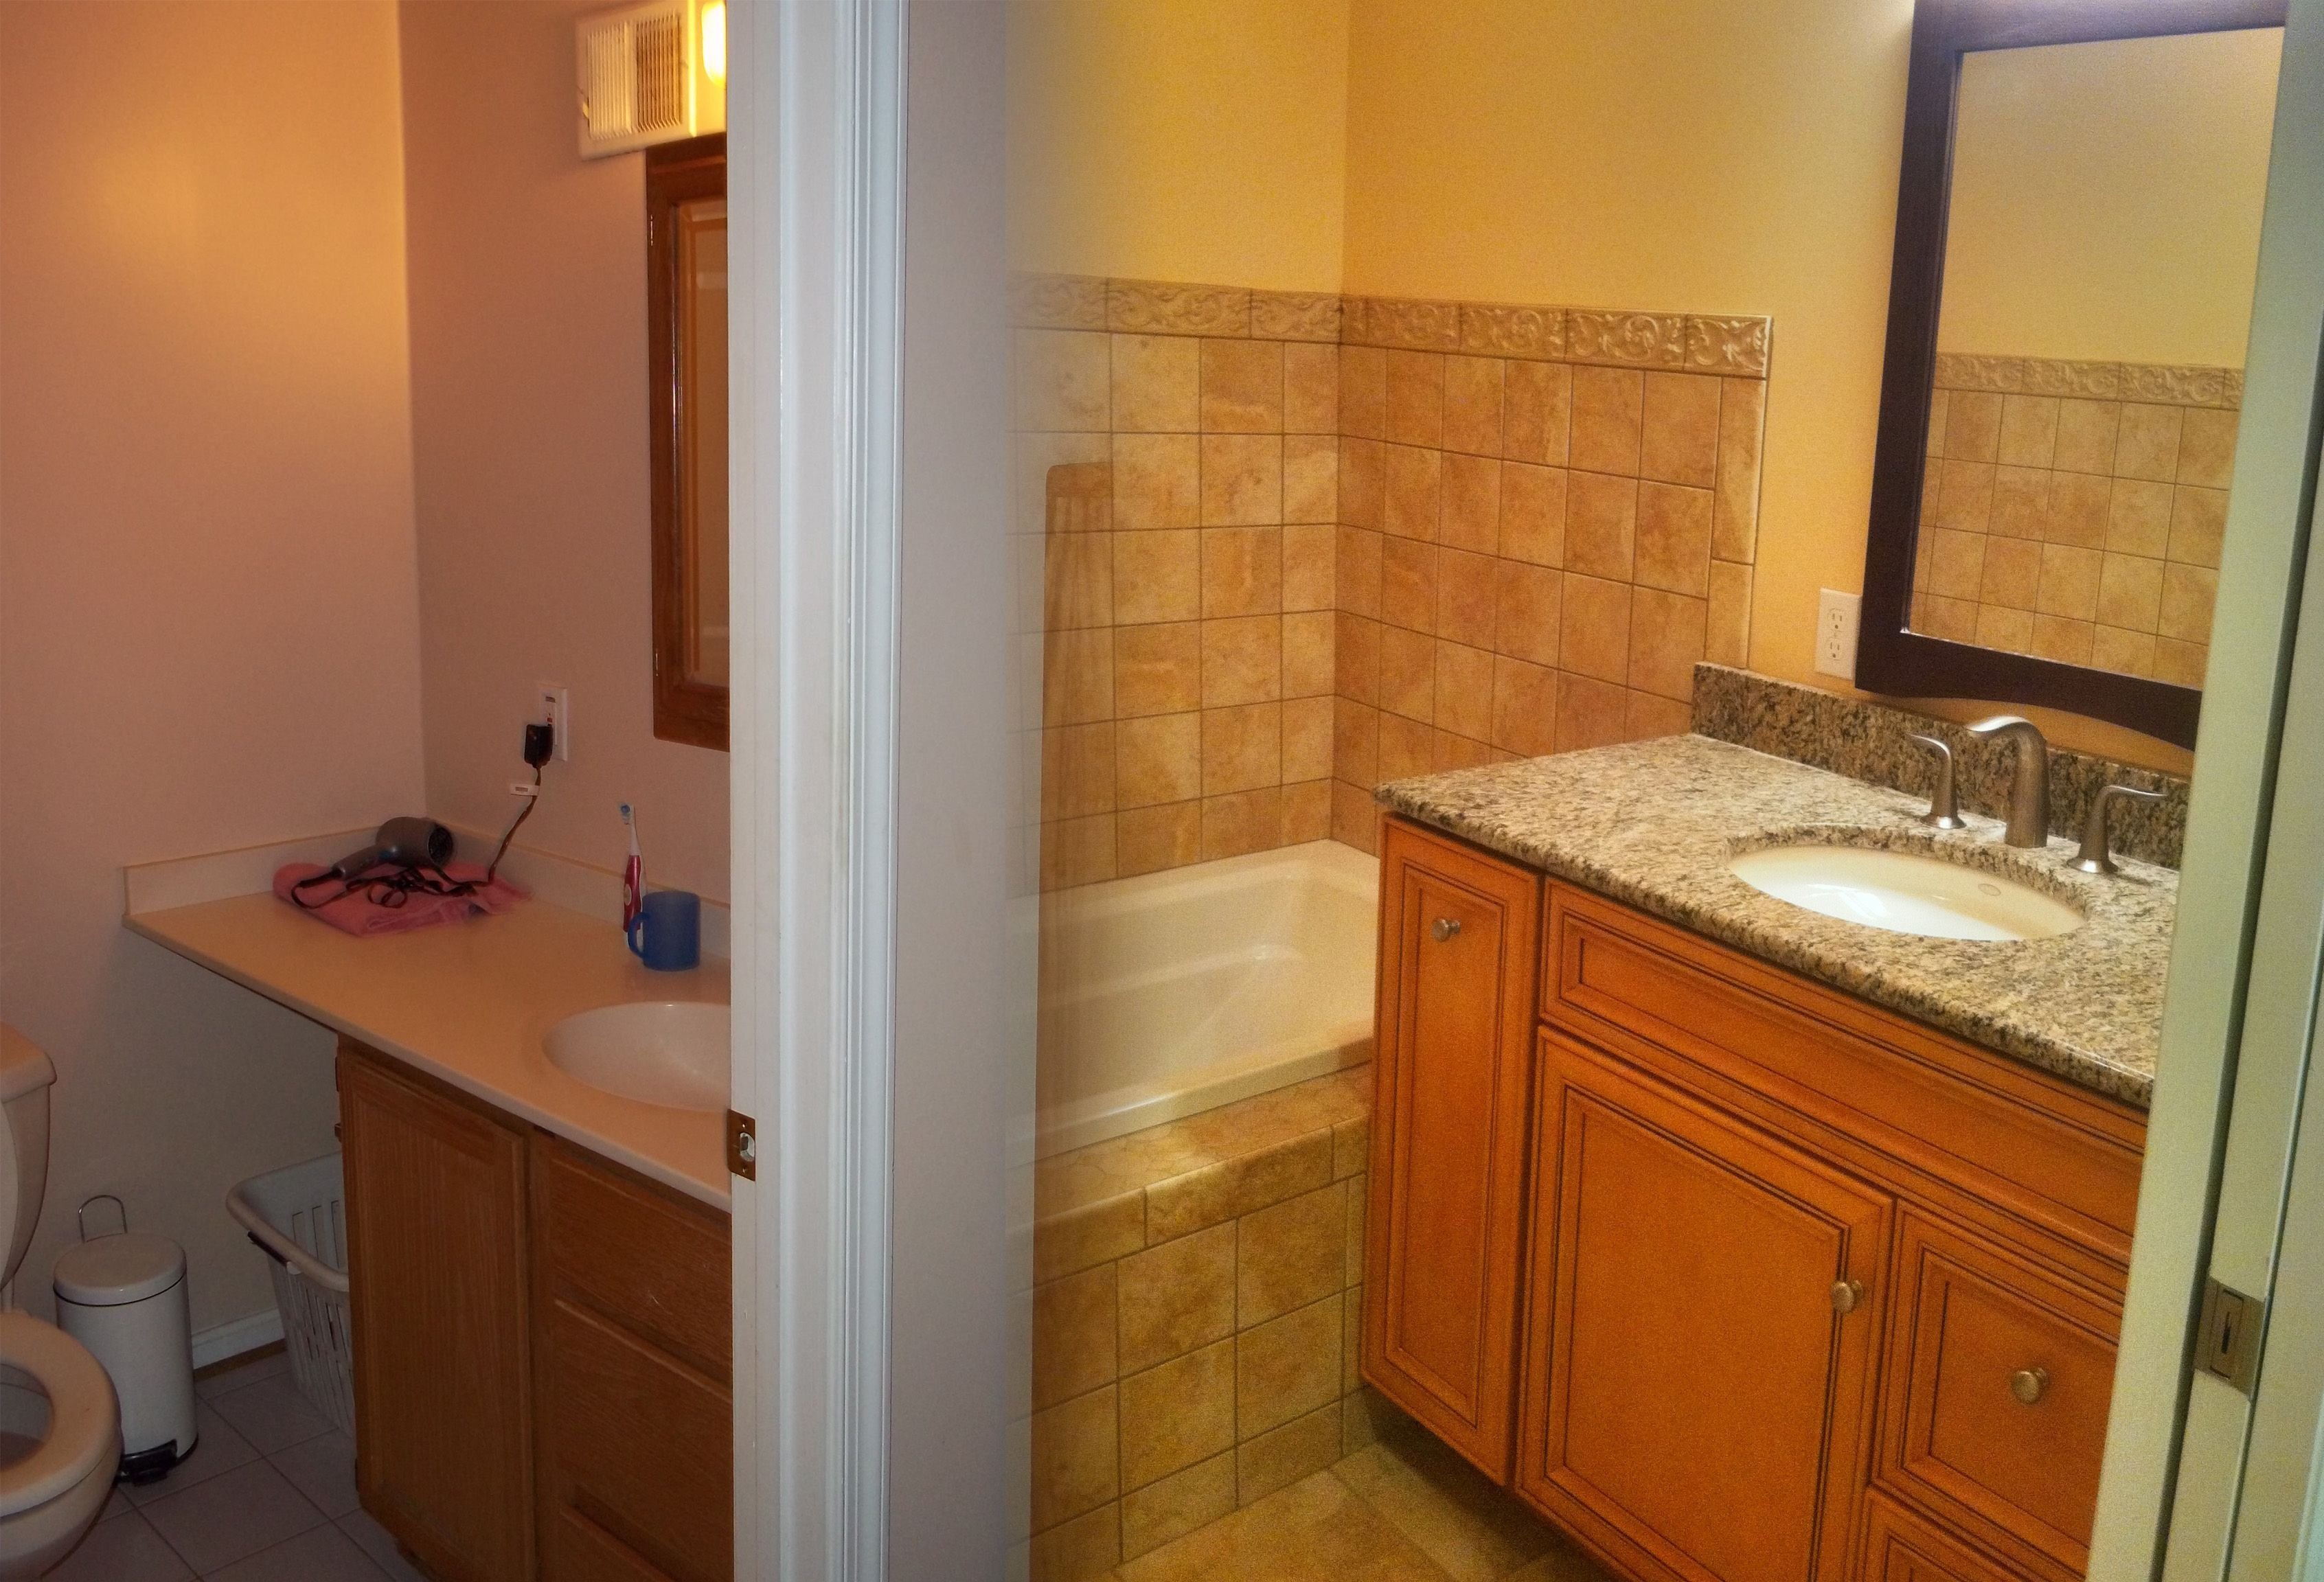 1960s bathroom renovation before and after for Home renovation bathroom ideas